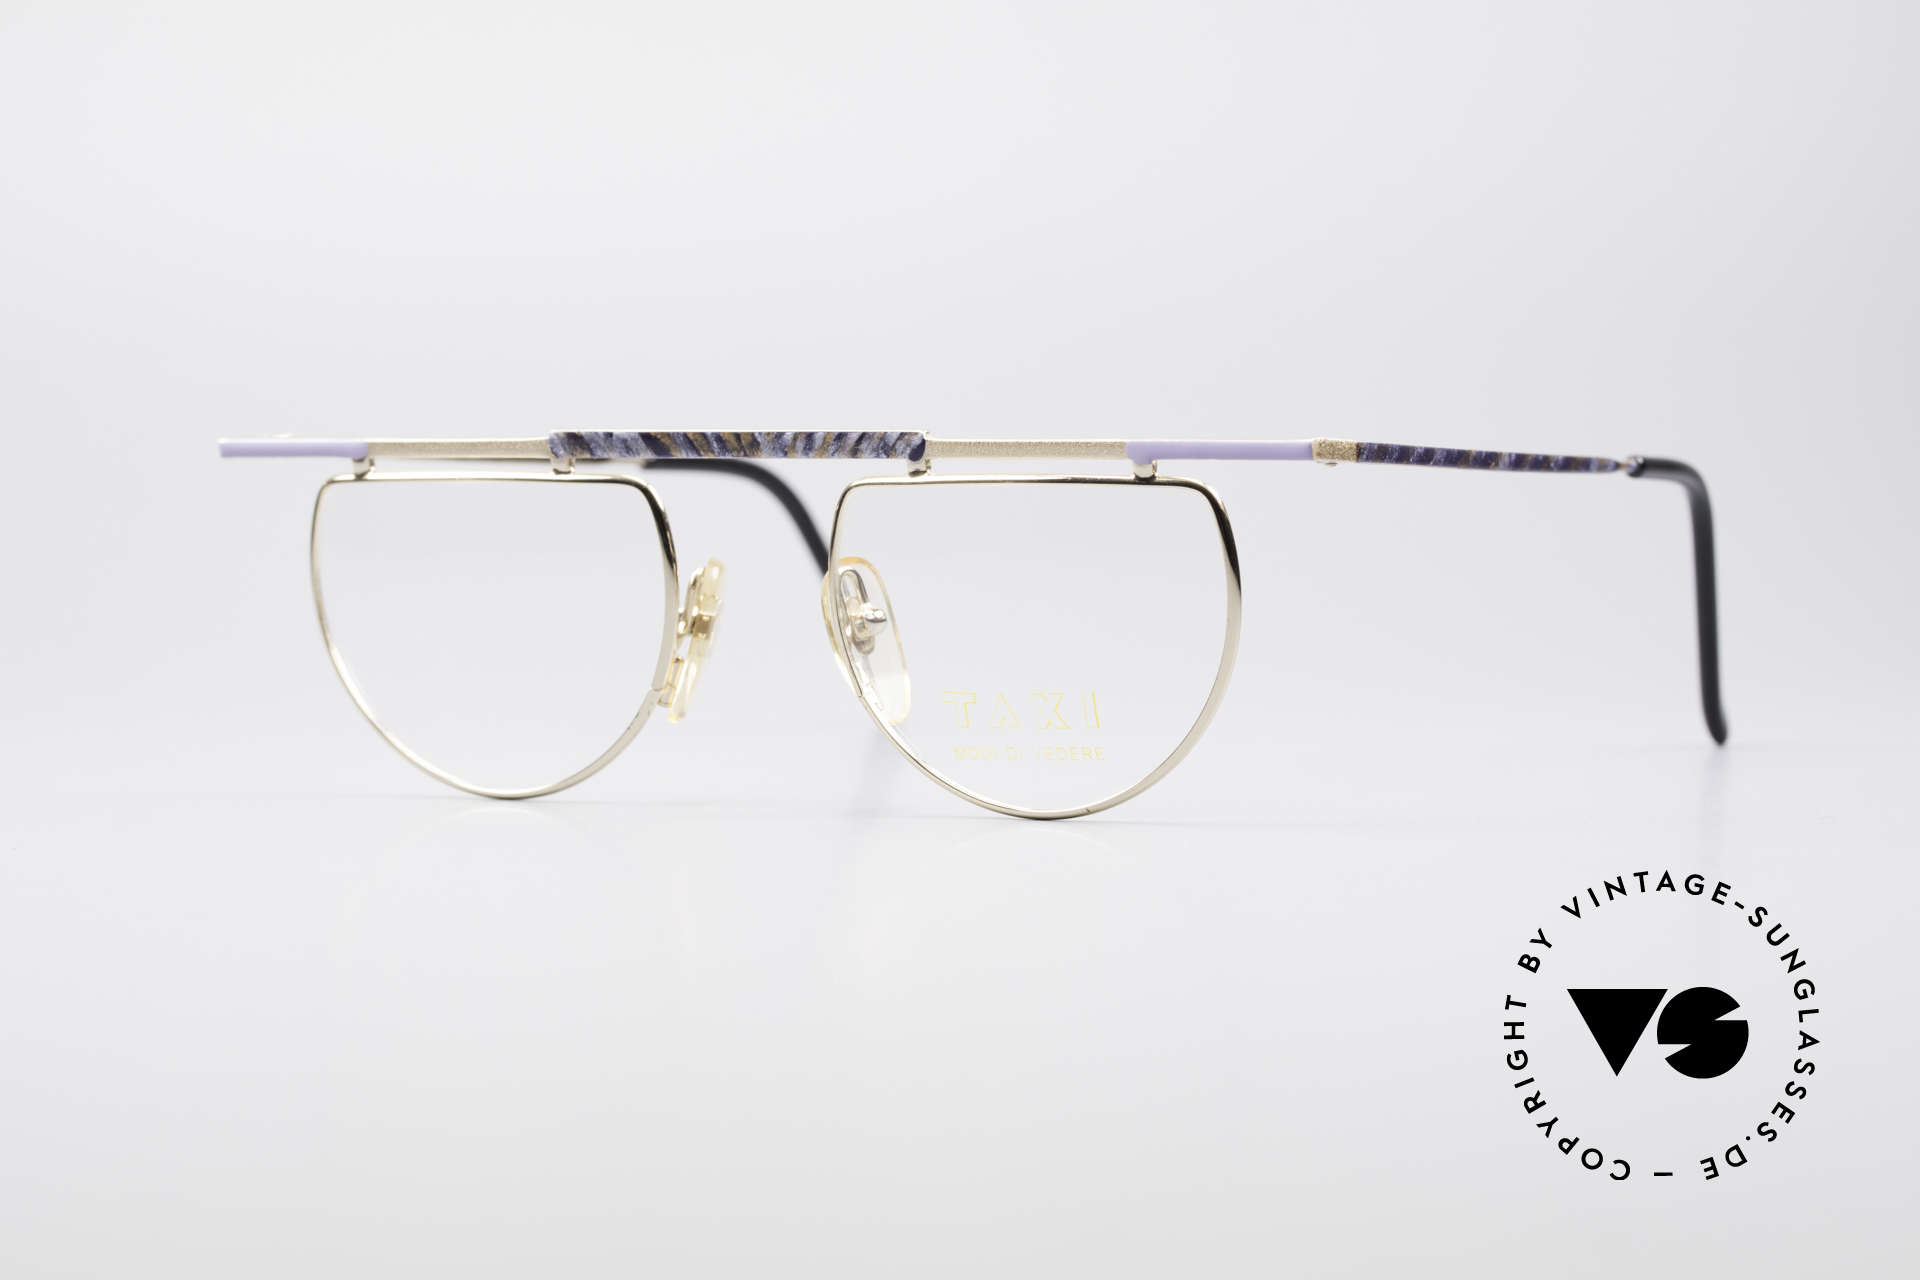 Taxi 223 by Casanova Vintage Art Eyeglasses, lively Taxi by Casanova vintage eyeglasses from the 80's, Made for Women